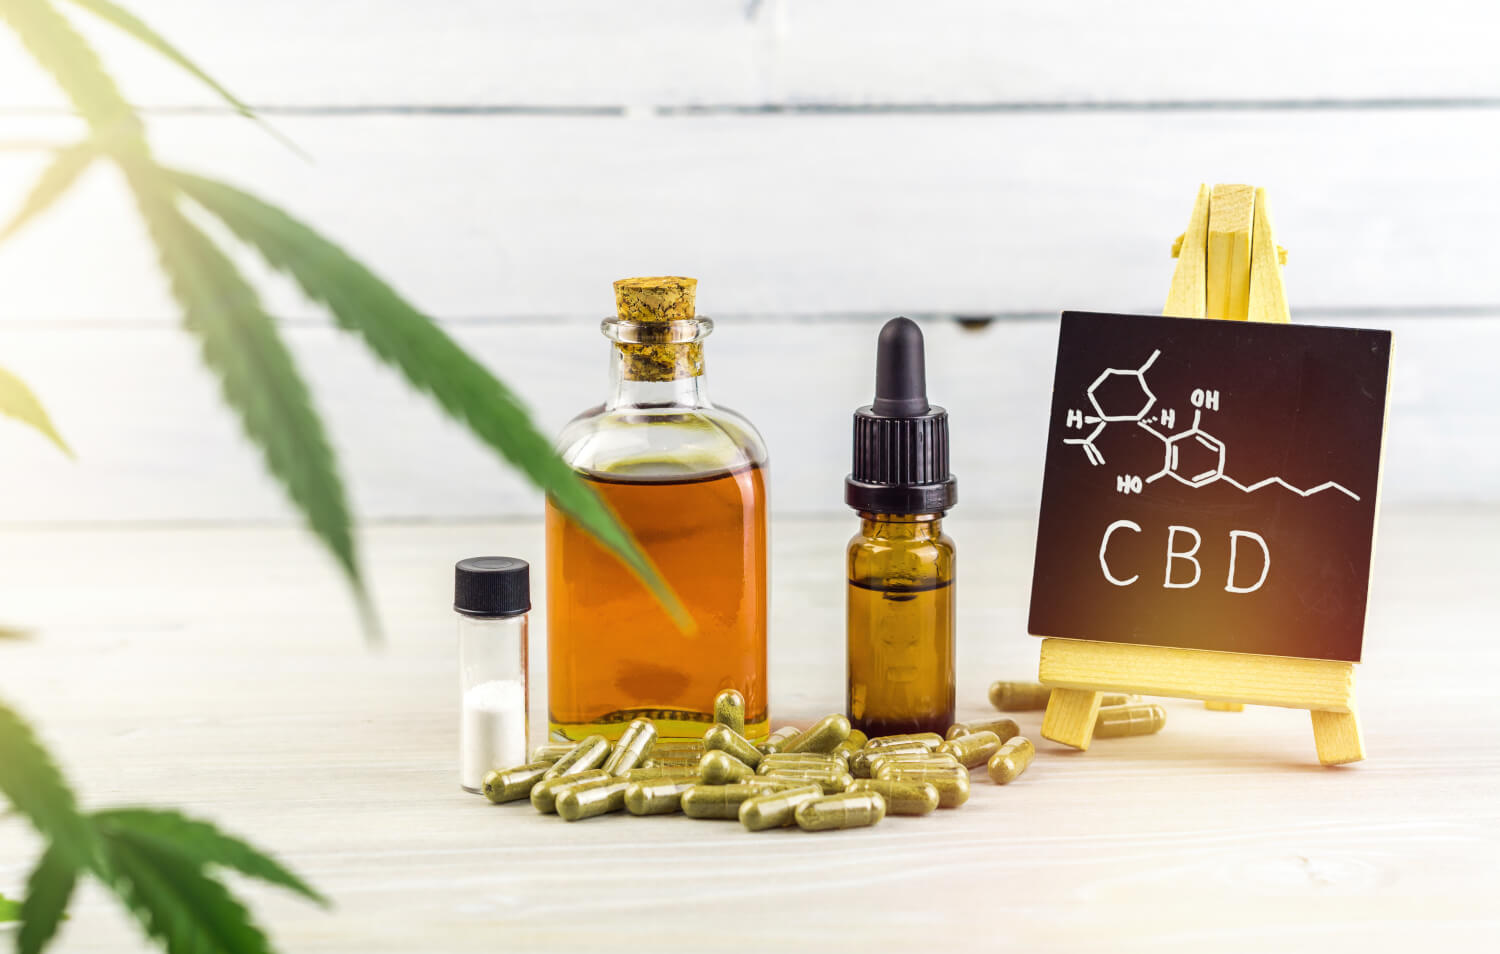 Cannabidiol CBD oils, capsules and crystals isolate with small blackboard with CBD word and chemical structure